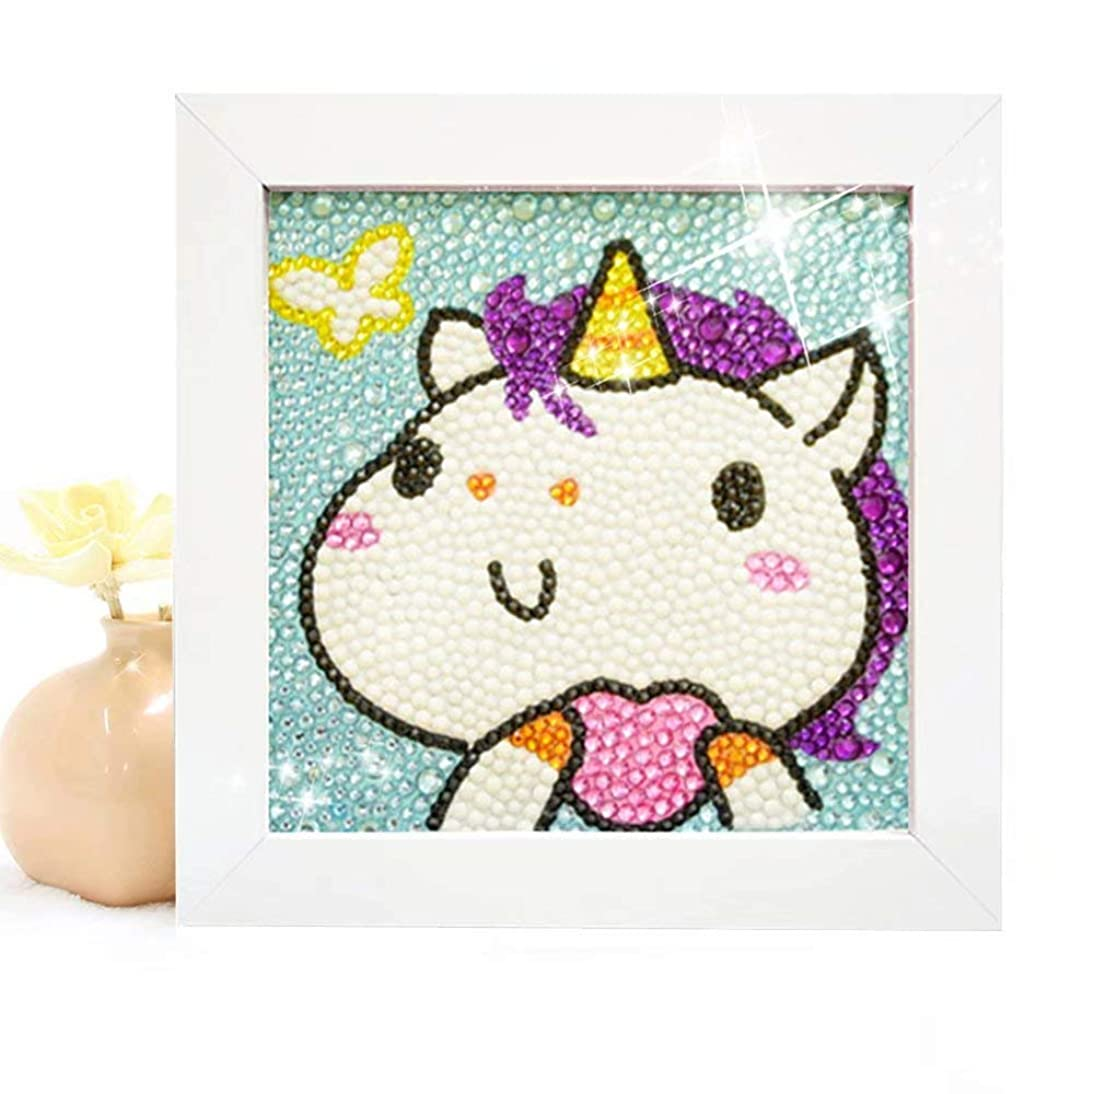 Diamond Painting for Kids Full Drill Painting by Number Kits Arts Crafts Supply Set Rhinestone Mosaic Making for Home Wall Decor Gifts for Christmas Birthday Mothers Day -Include Wooden Frame-Unicorn